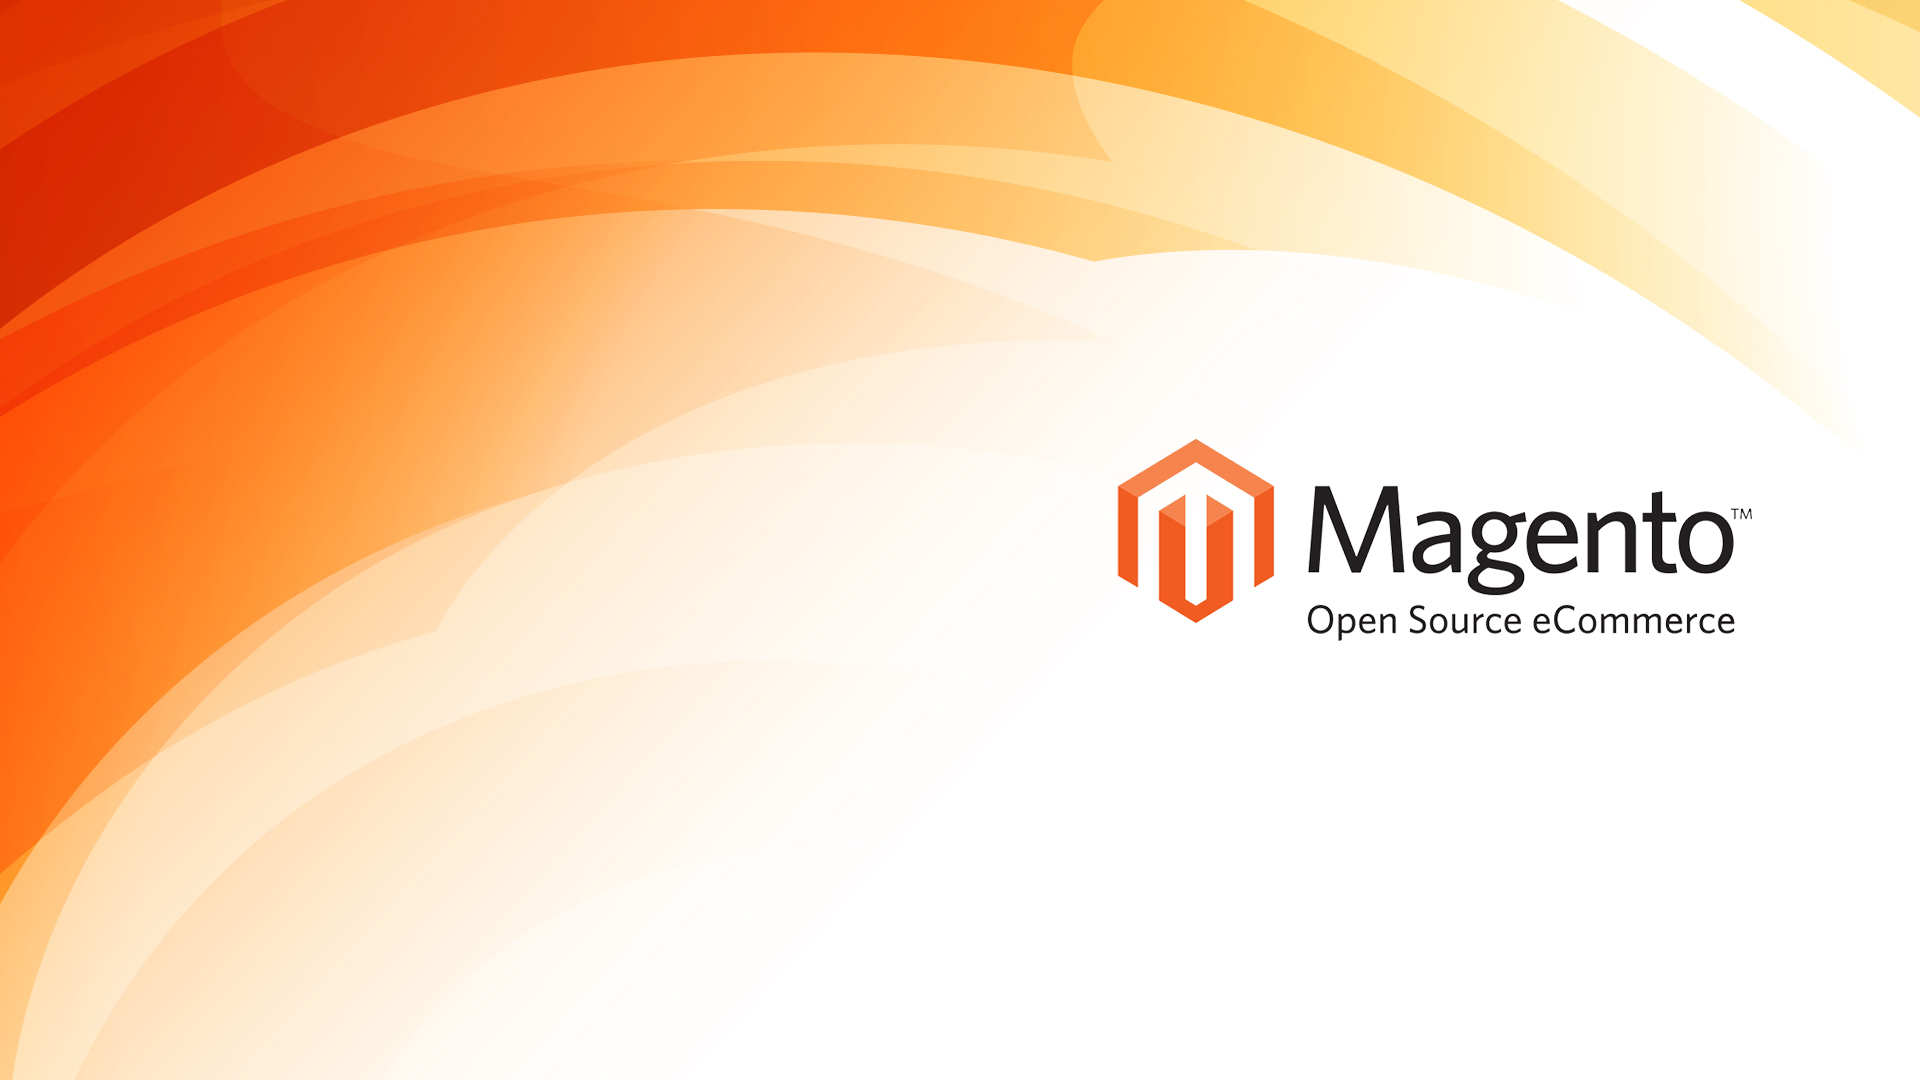 Magento 2 Wallpapers pack from Ubertheme